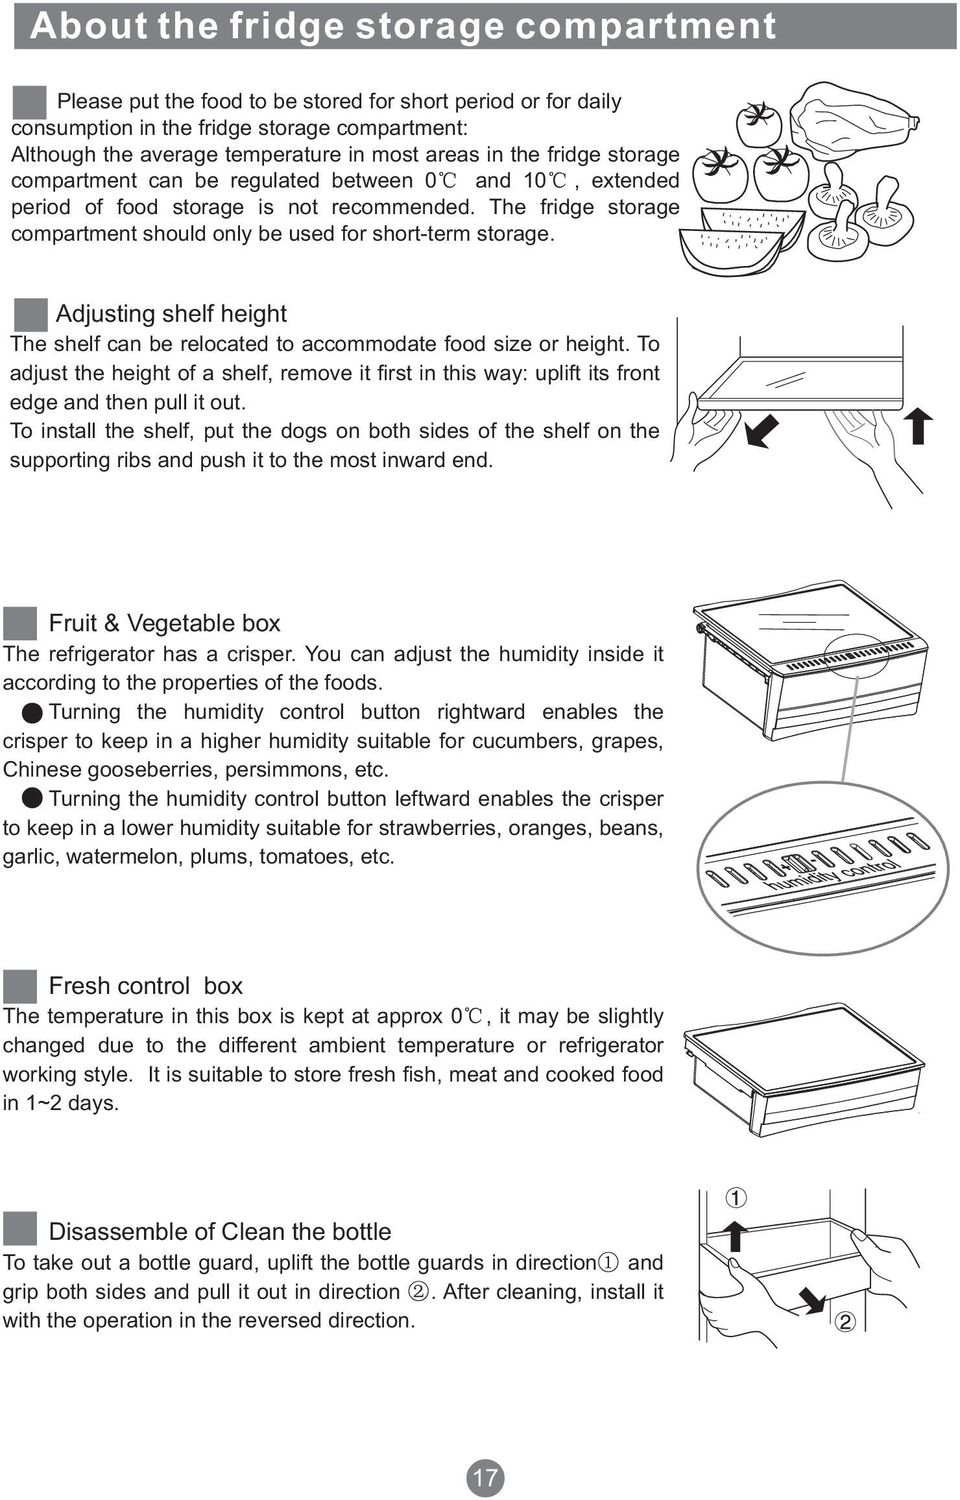 Adjusting shelf height The shelf can be relocated to accommodate food size or height. To adjust the height of a shelf, remove it first in this way: uplift its front edge and then pull it out.